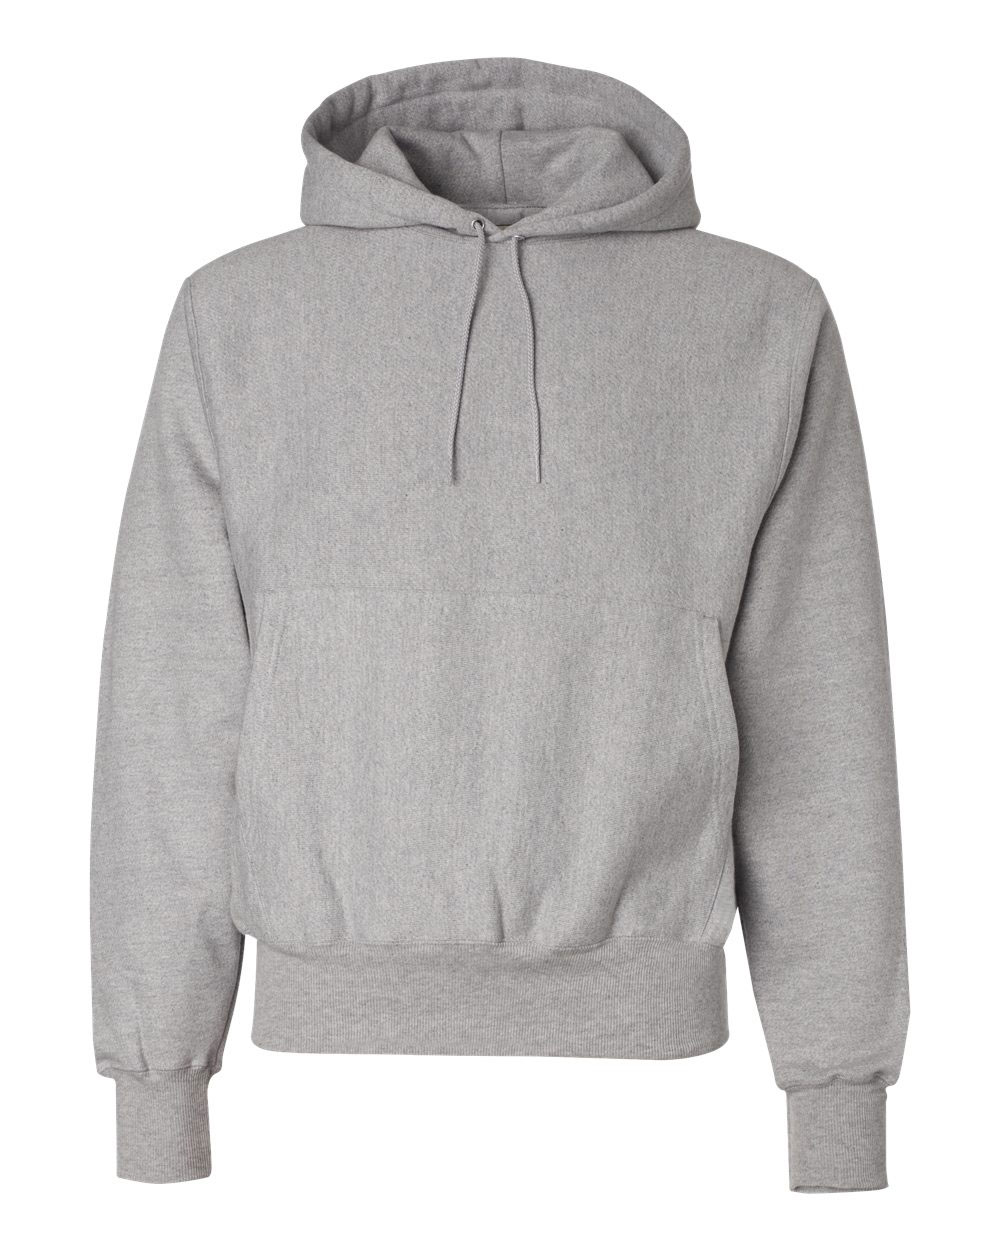 Reverse Weave Hooded Champion Sweatshirt